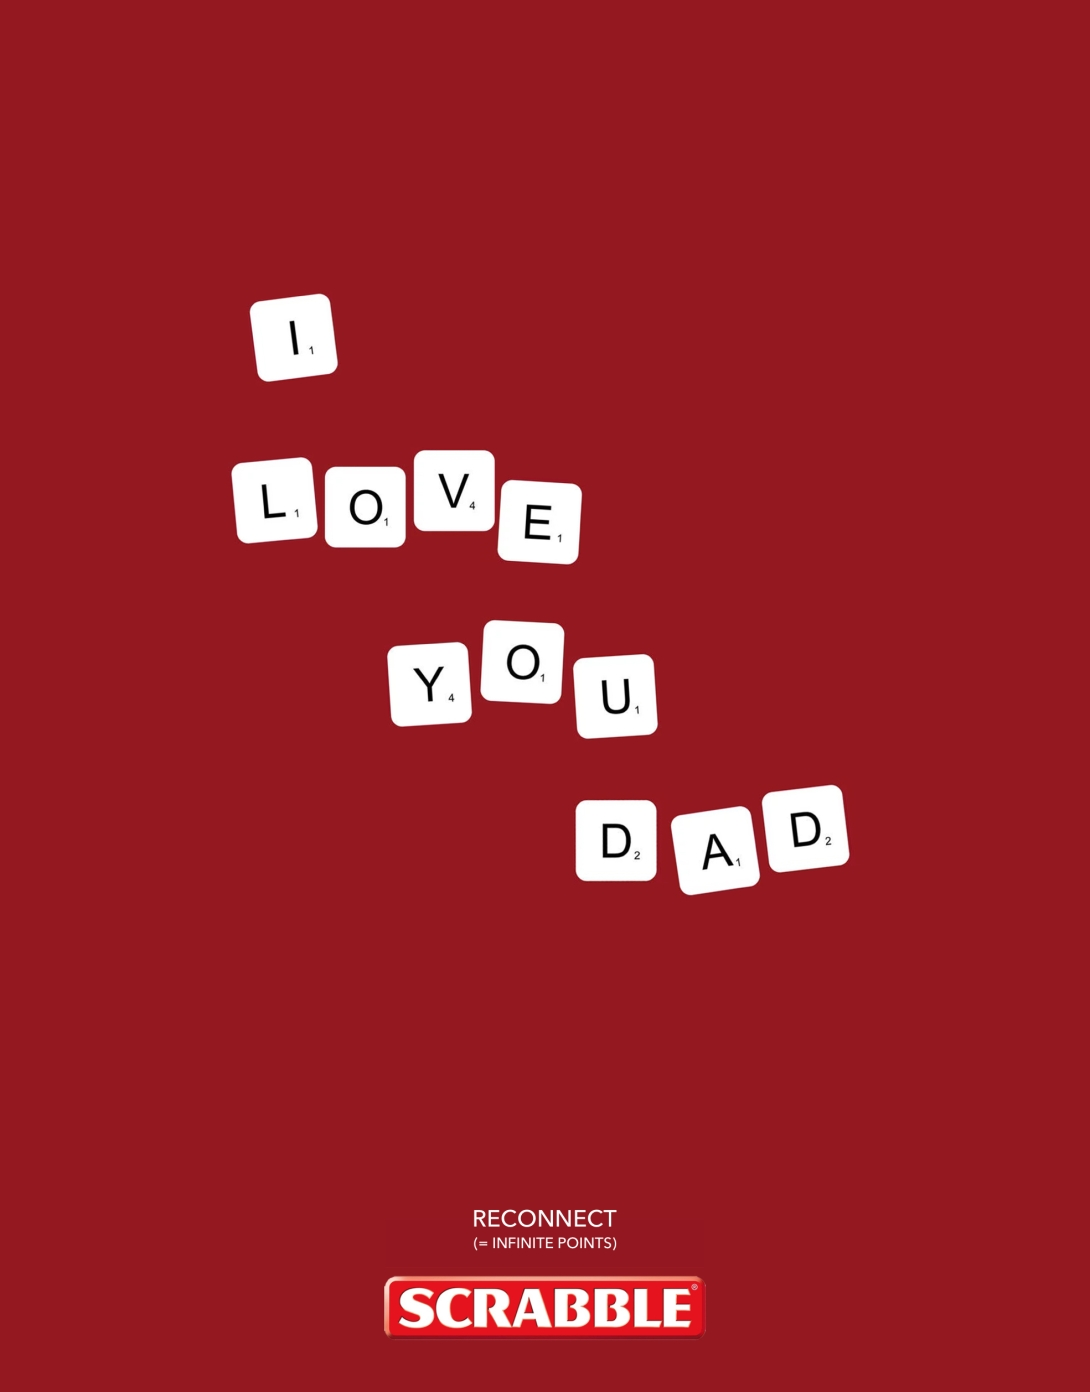 Print advert idea - I love you dad - scrabble